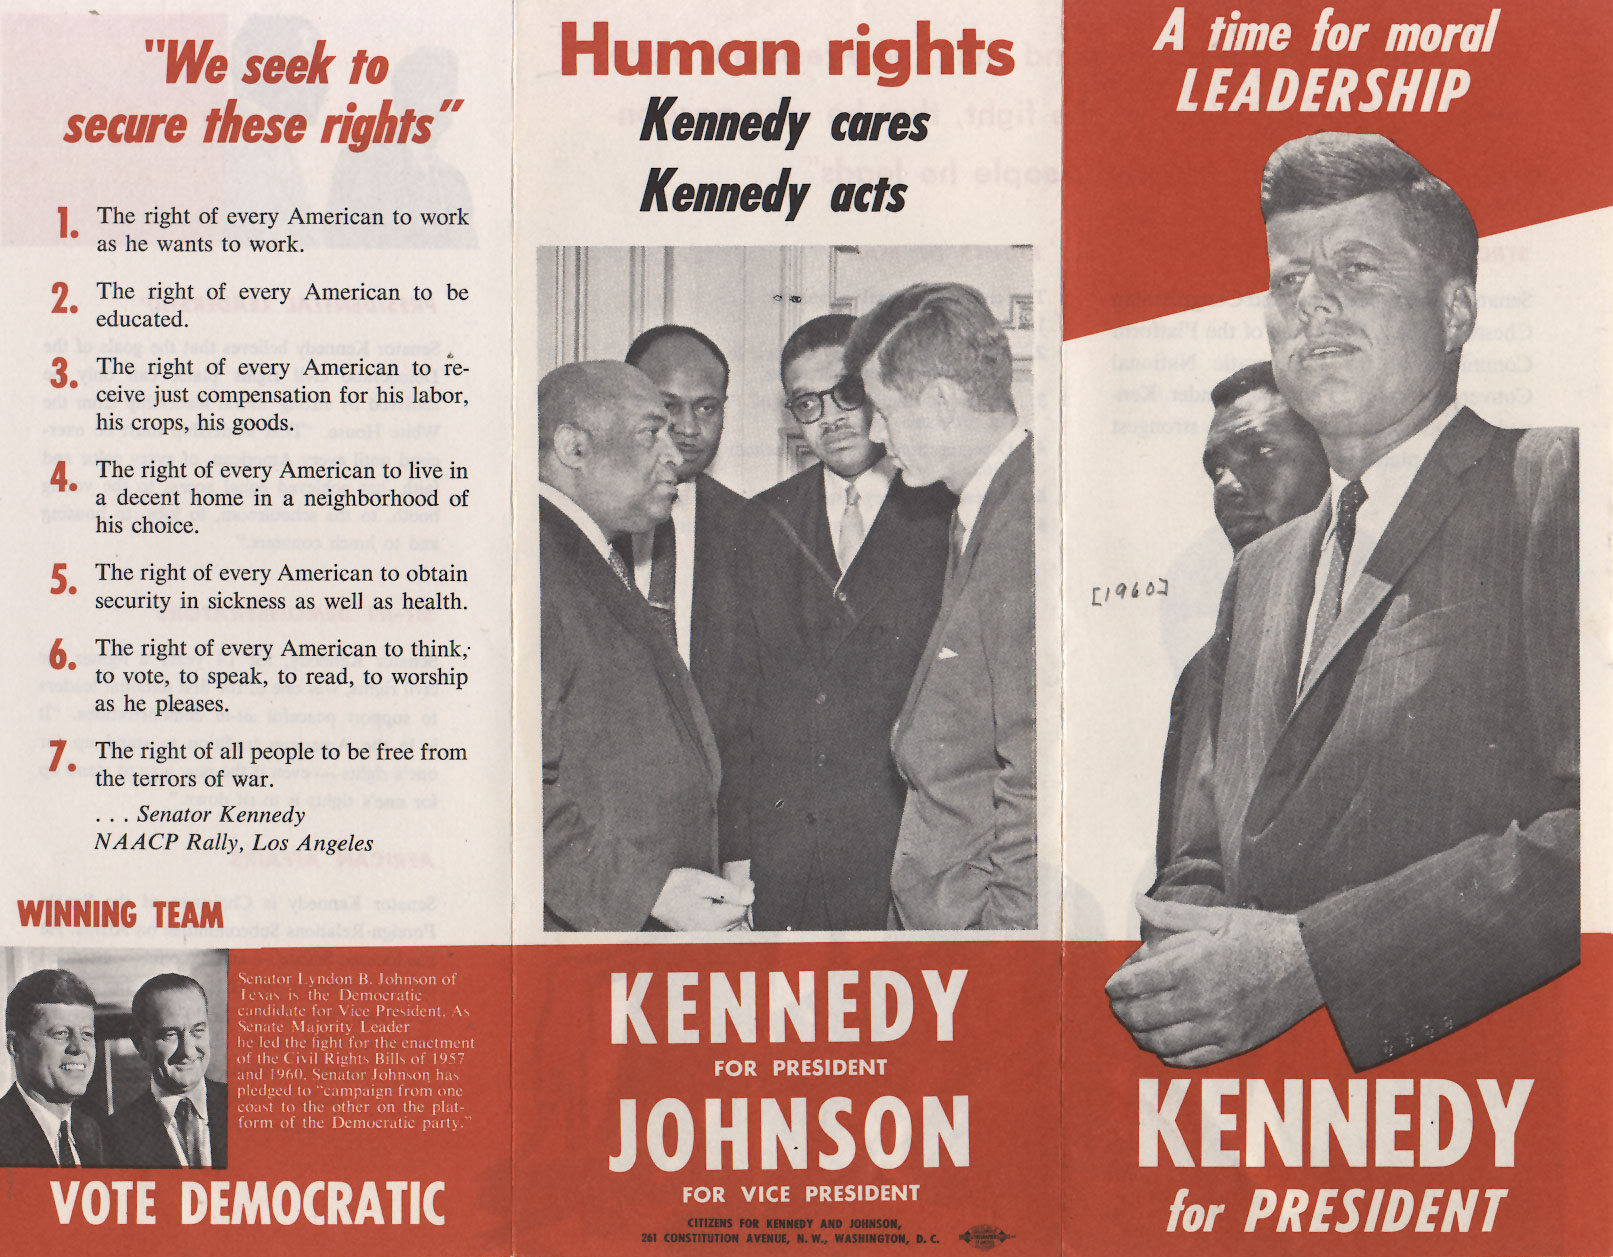 JFK And The Public View The Kennedy Era